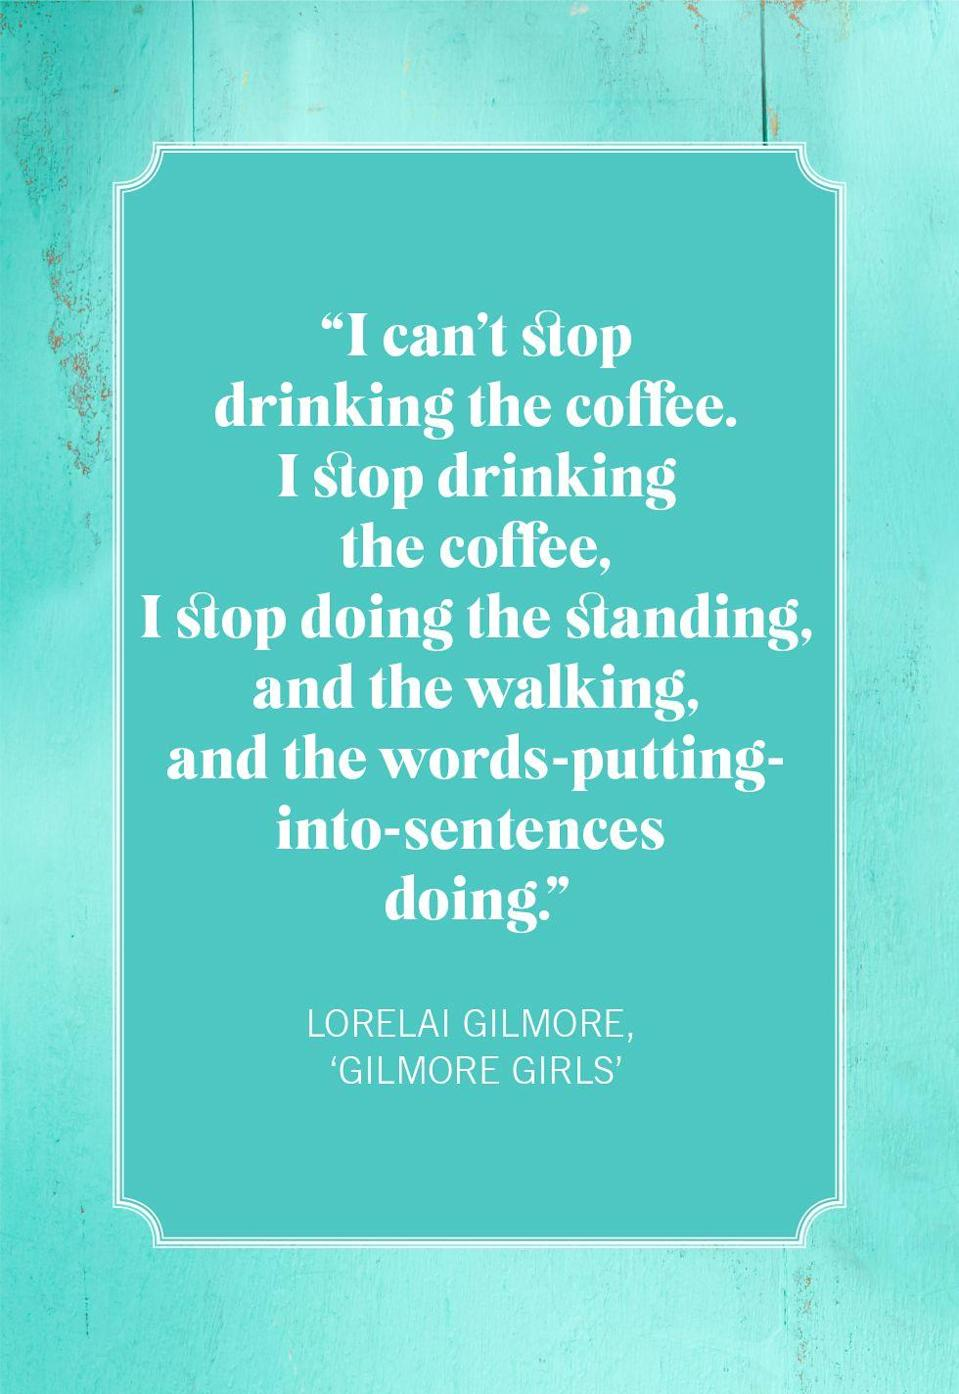 """<p>""""I can't stop drinking the coffee. I stop drinking the coffee, I stop doing the standing, and the walking, and the words-putting-into-sentences doing.""""</p>"""